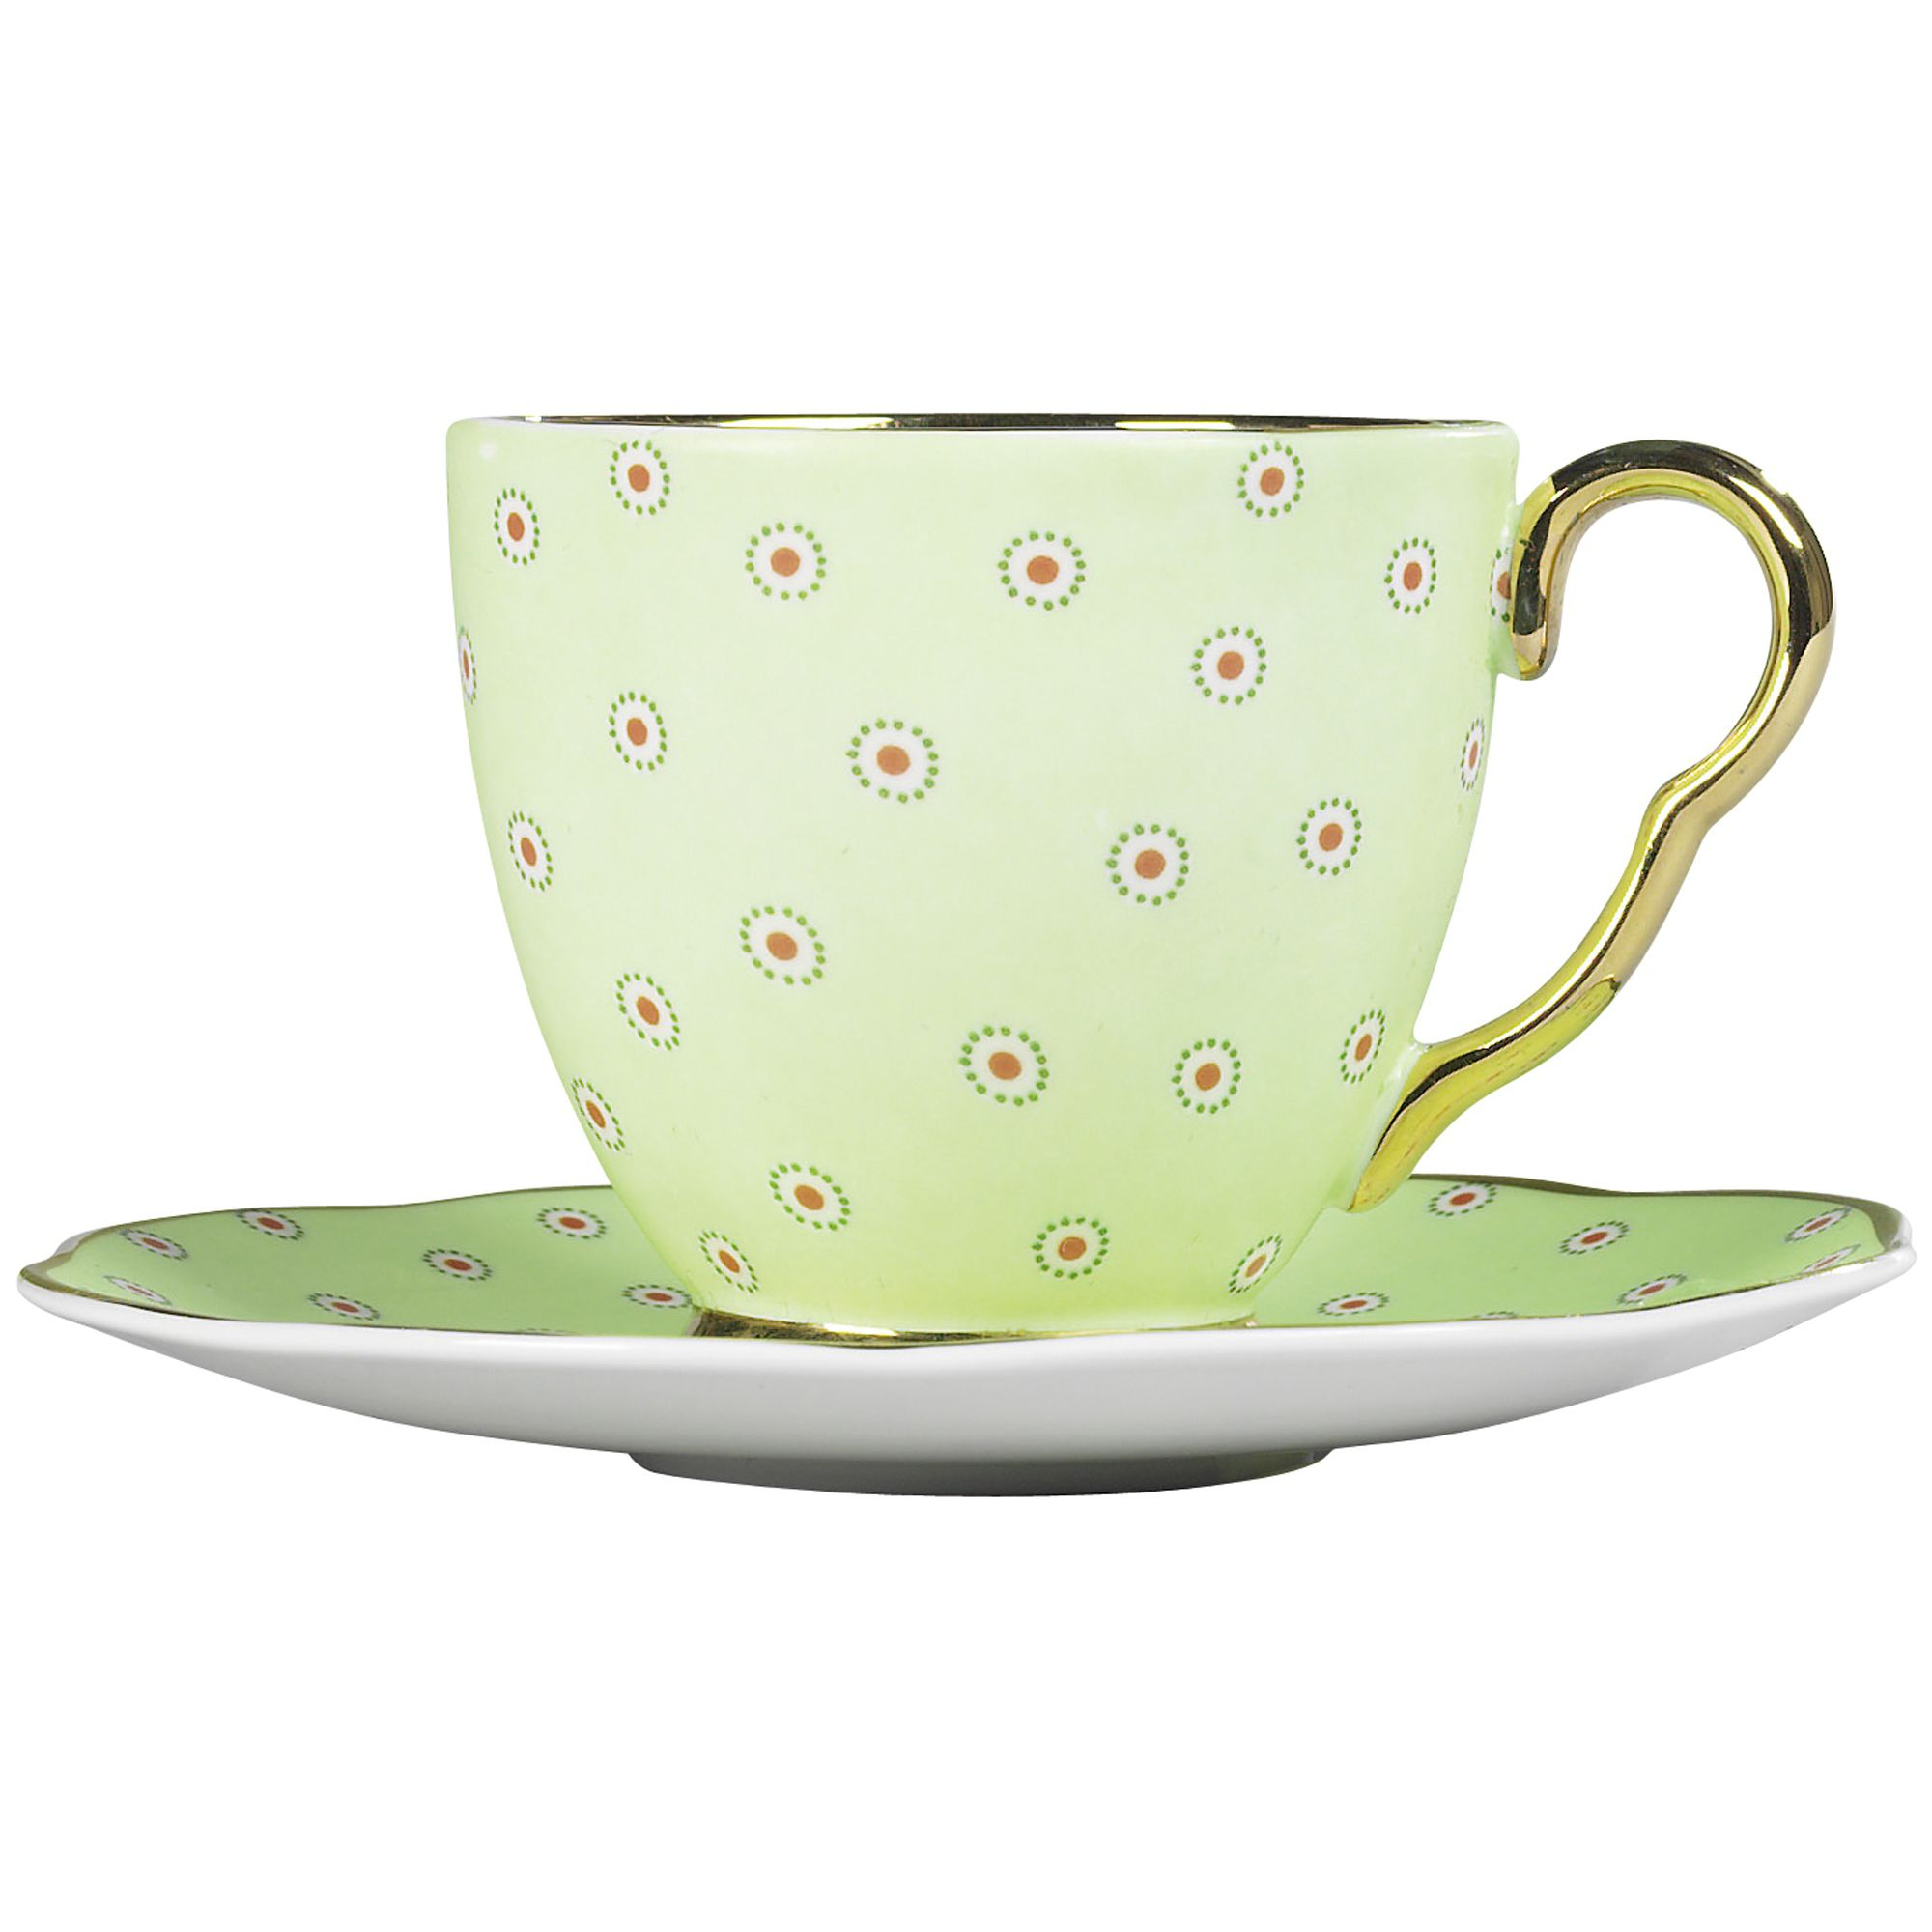 Polka dot cup and saucer